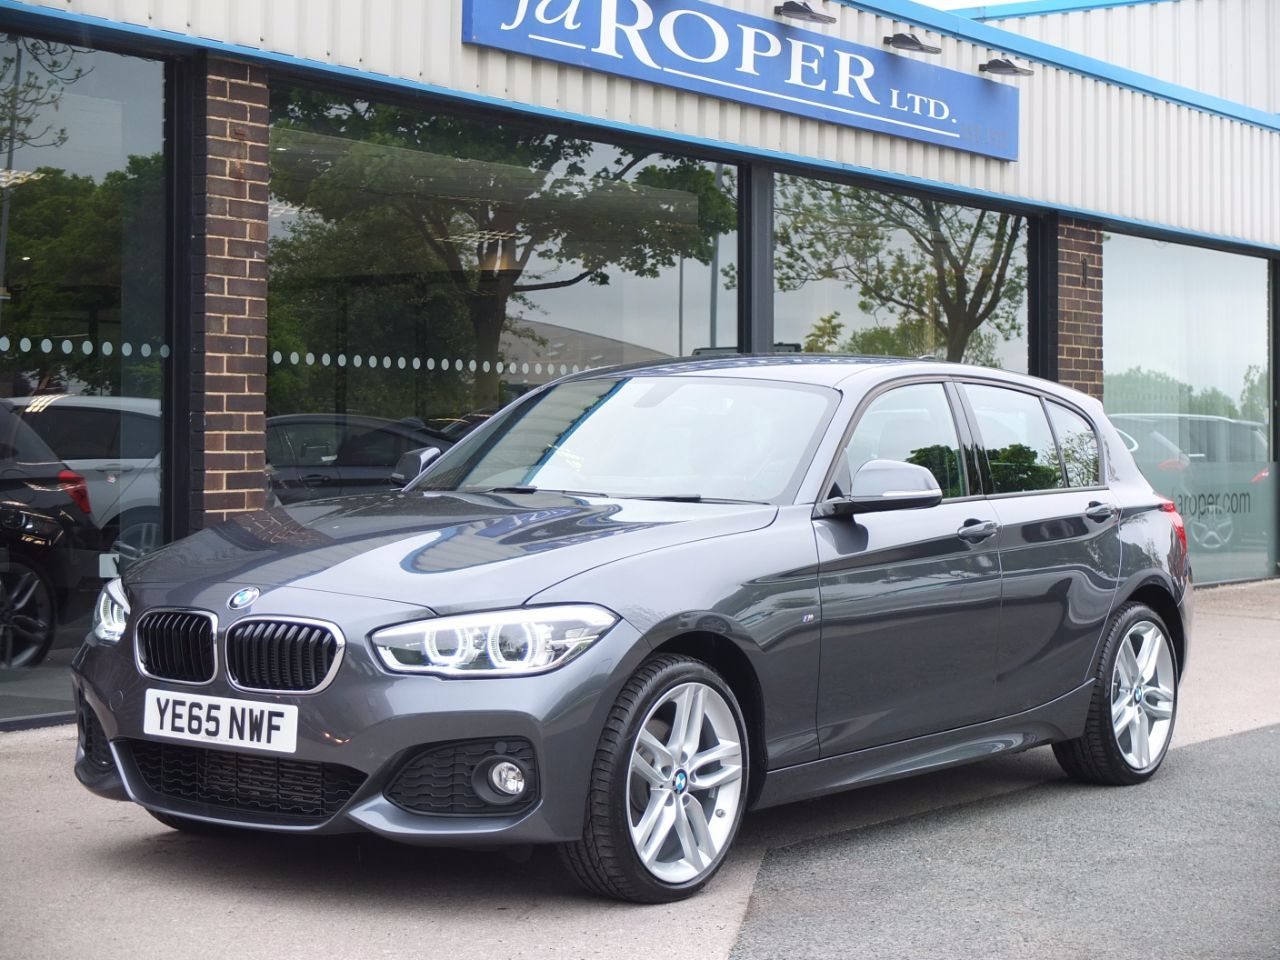 second hand bmw 1 series 120d xdrive m sport auto 5 door for sale in bradford west yorkshire. Black Bedroom Furniture Sets. Home Design Ideas